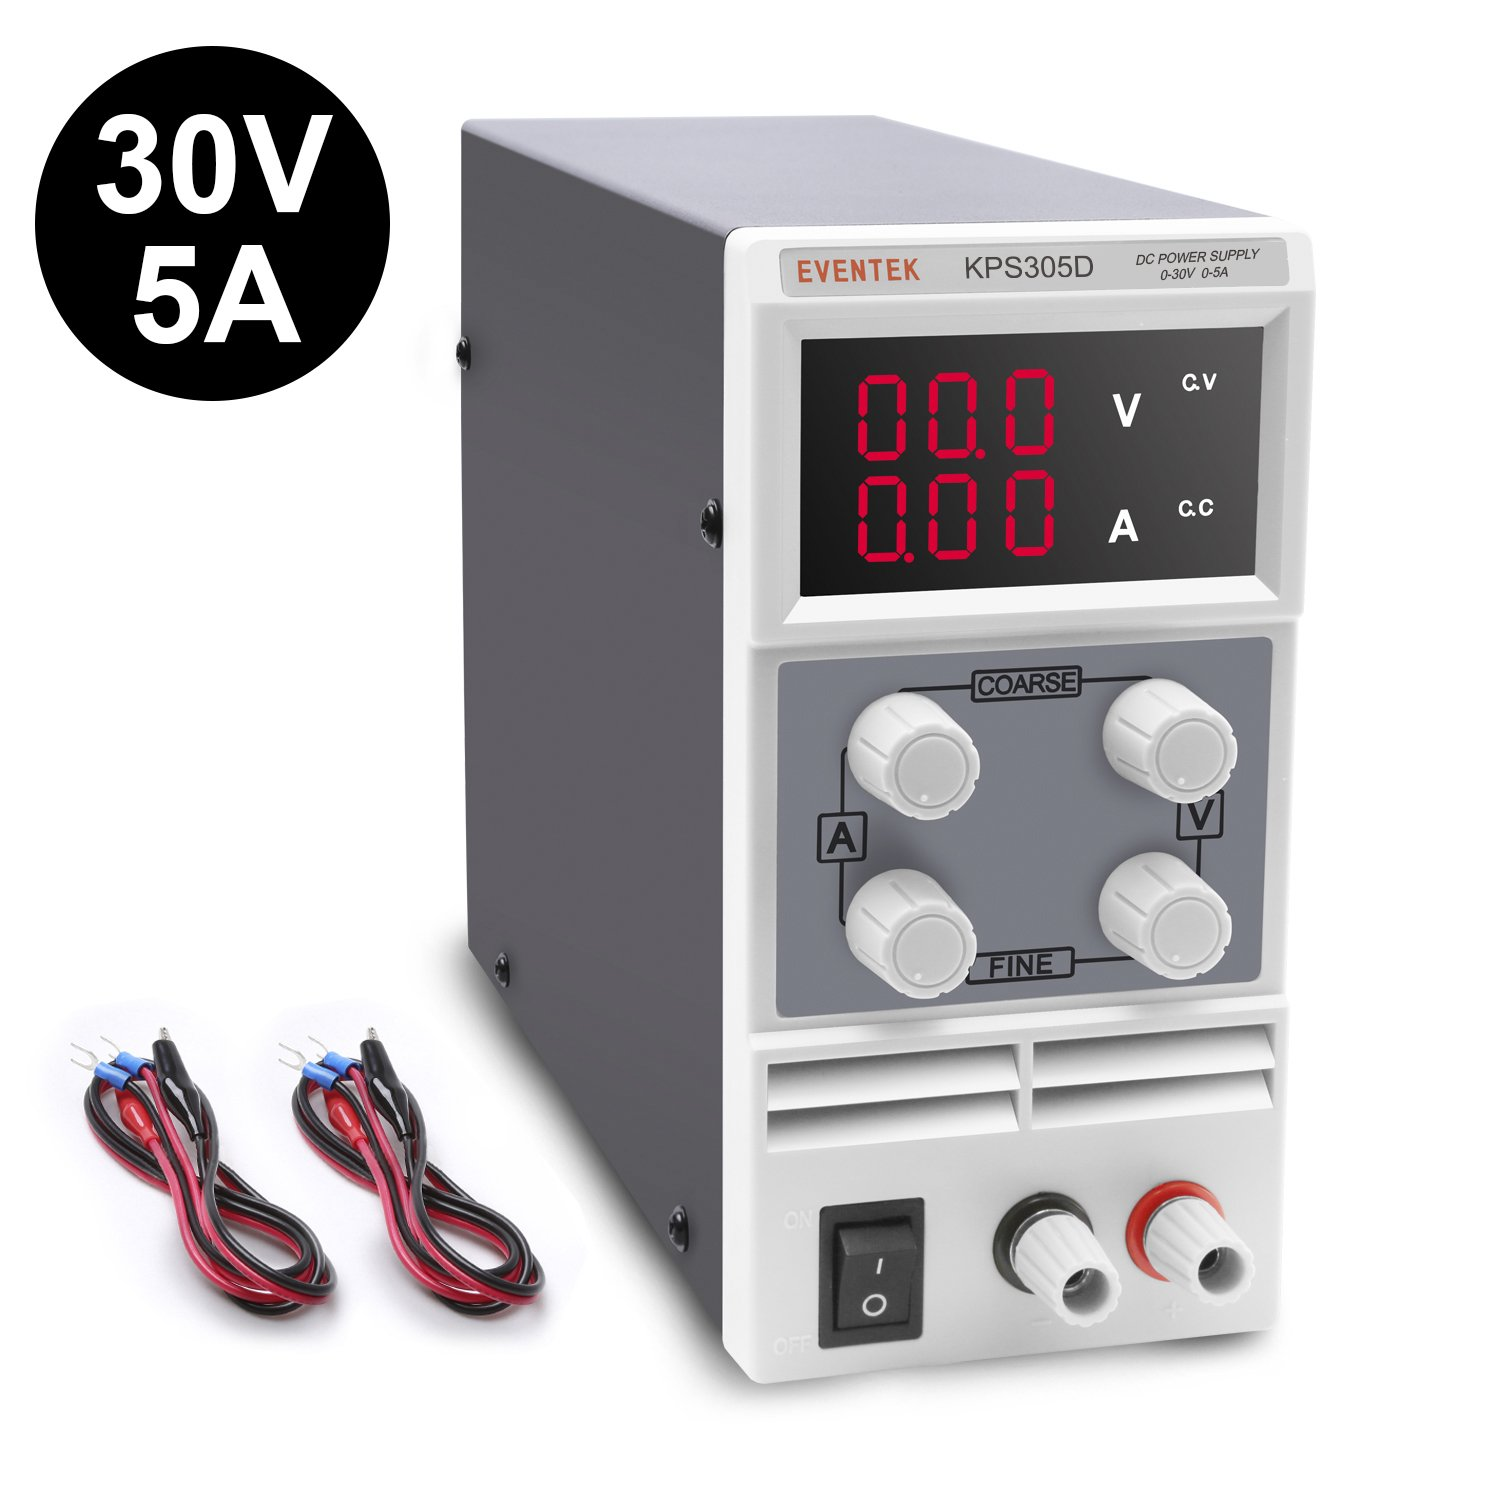 Power Supplies Lab Instruments Equipment Industrial 10a 1 30v Variable Supply With Lm317 Dc Eventek Kps305d Adjustable Switching Regulated Digital 0